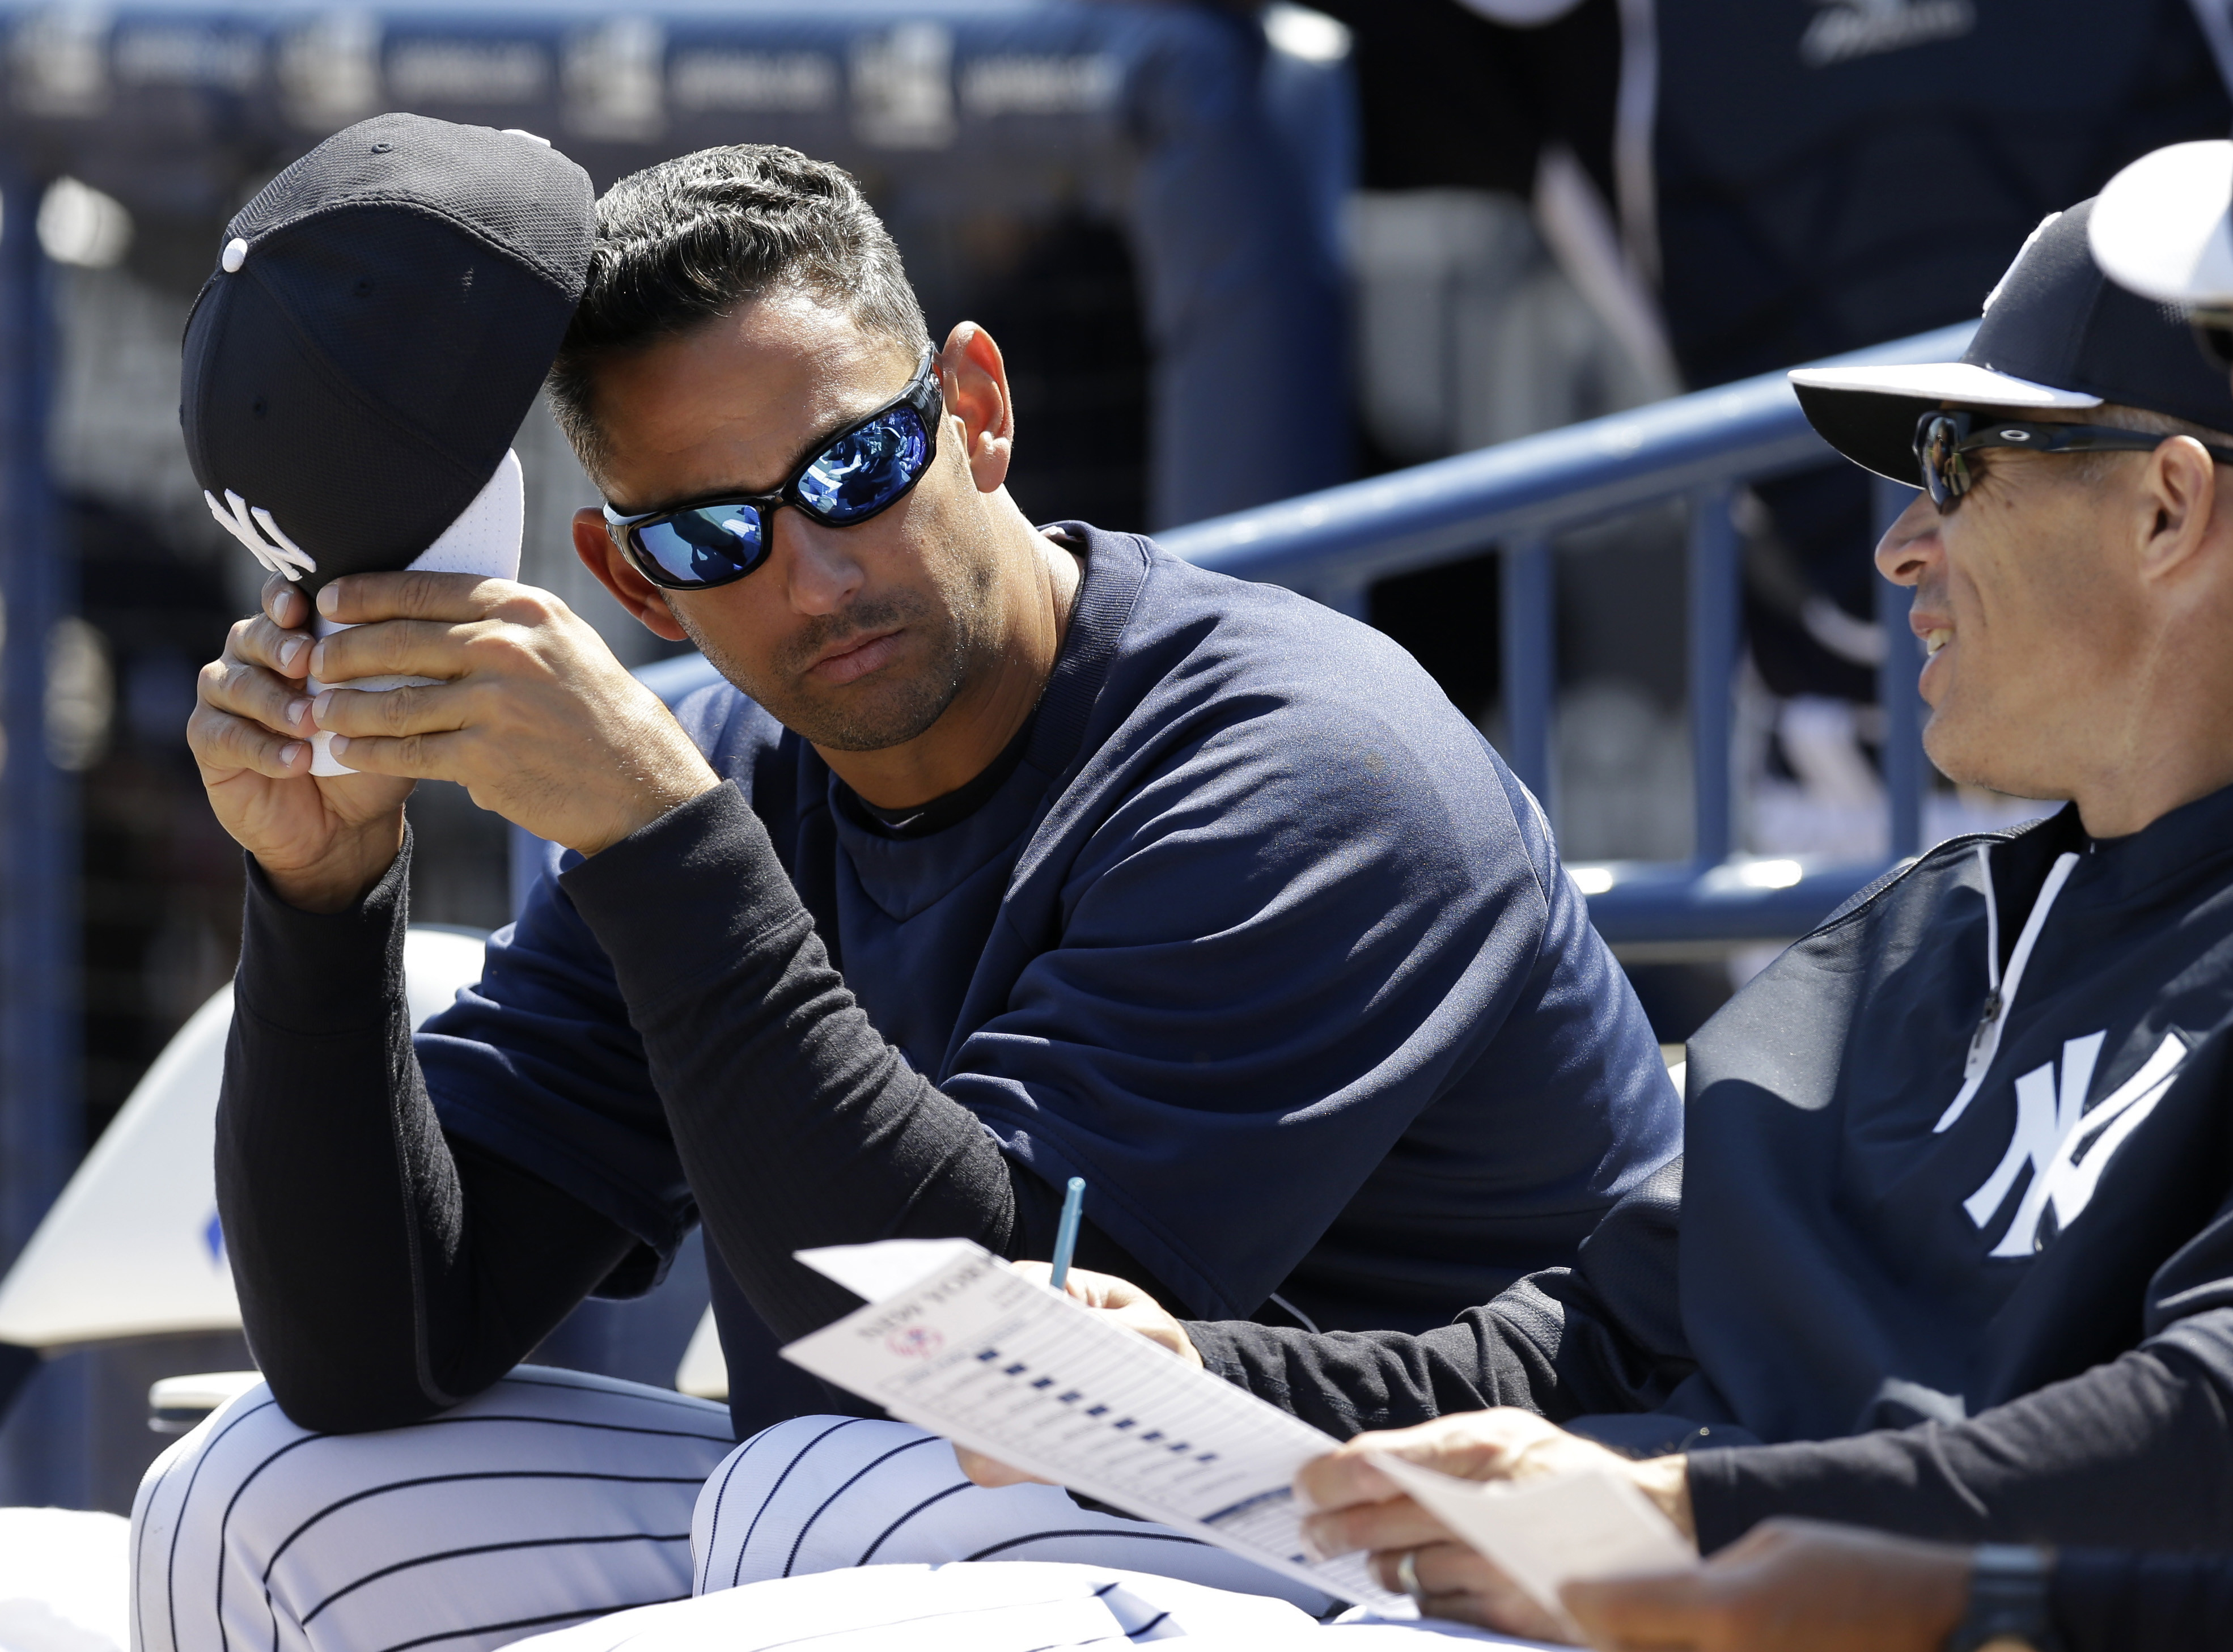 Former New York Yankees catcher Jorge Posada, left, in camp as a guest instructor, sits with New York Yankees manager Joe Girardi before a spring training baseball game against the Miami Marlins in Tampa, on March 15, 2013.